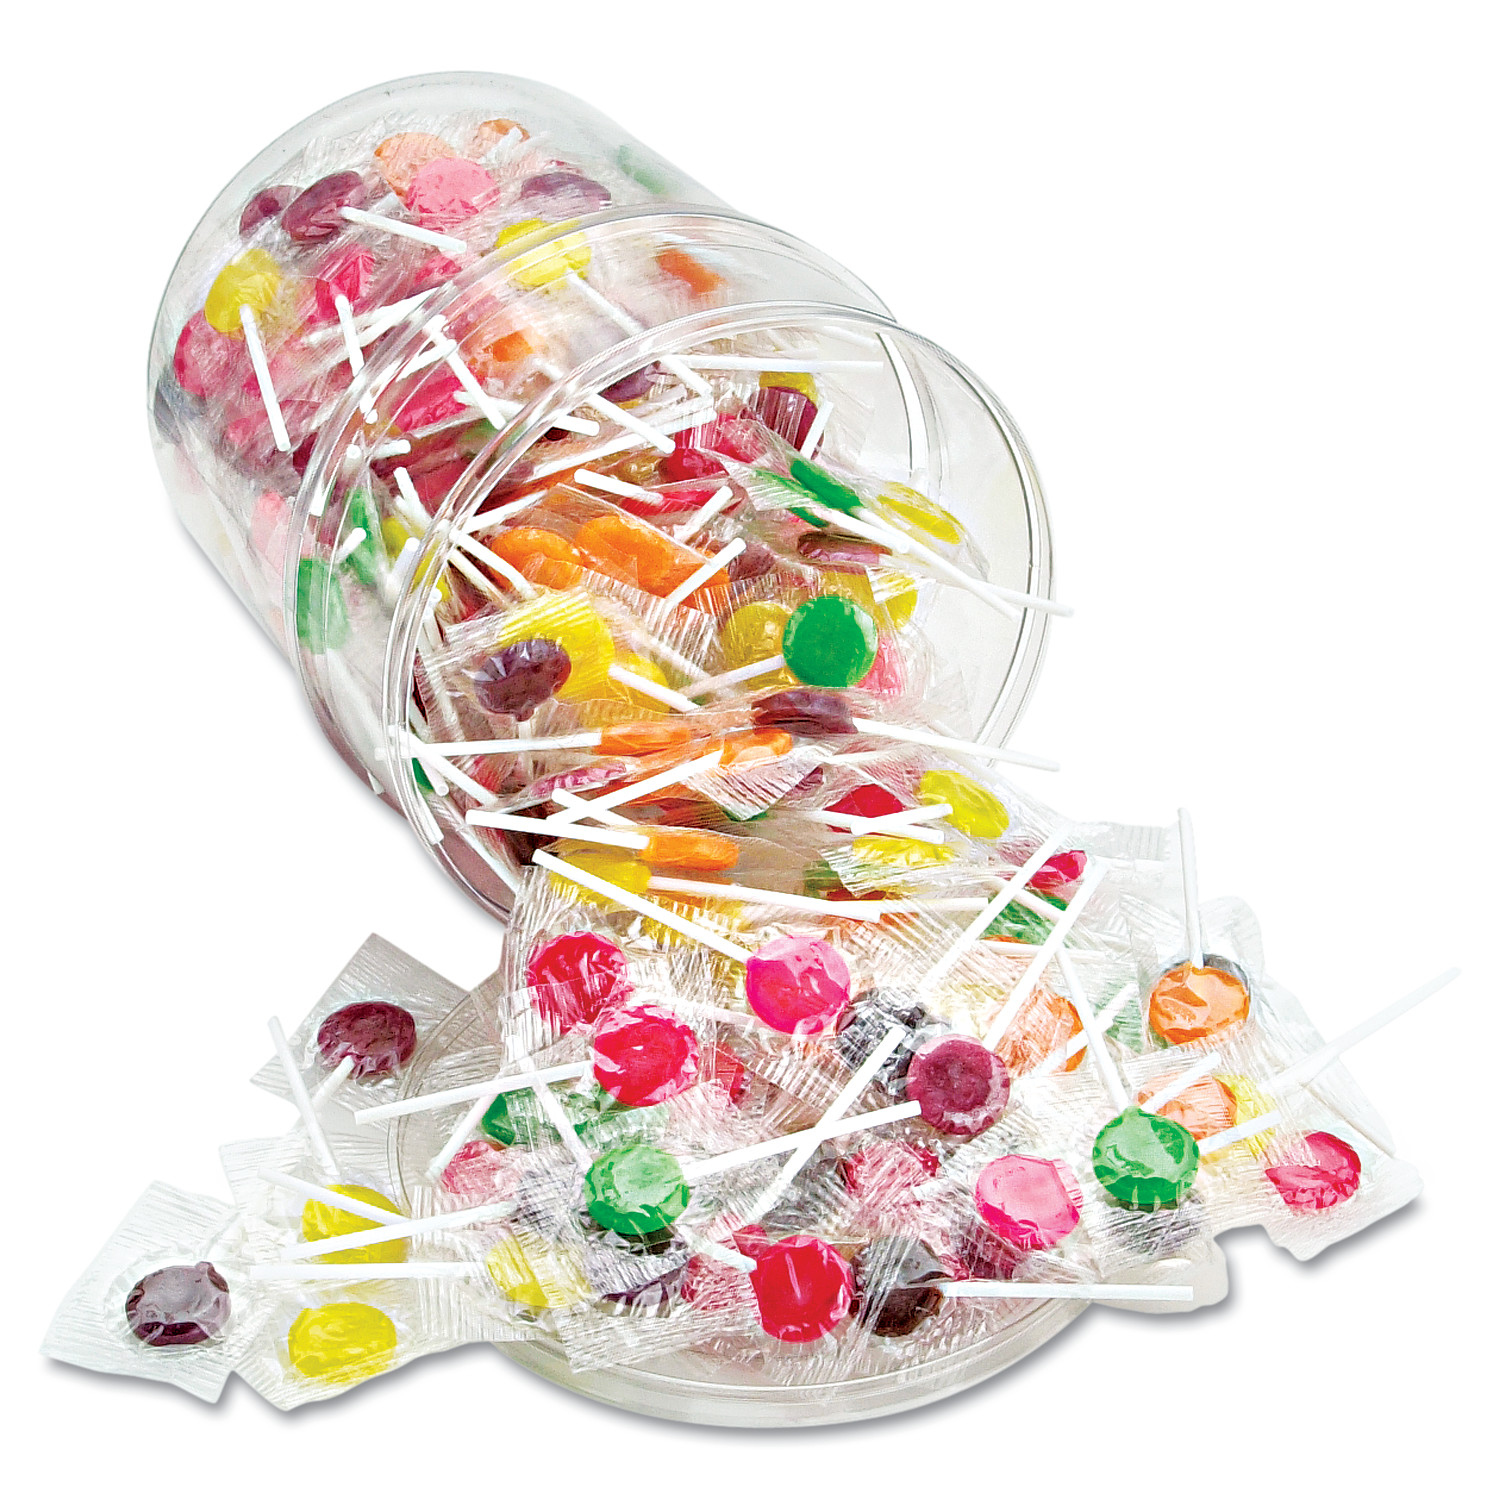 Office Snax Sugar-Free Suckers, Assorted Flavors, 32oz Tub